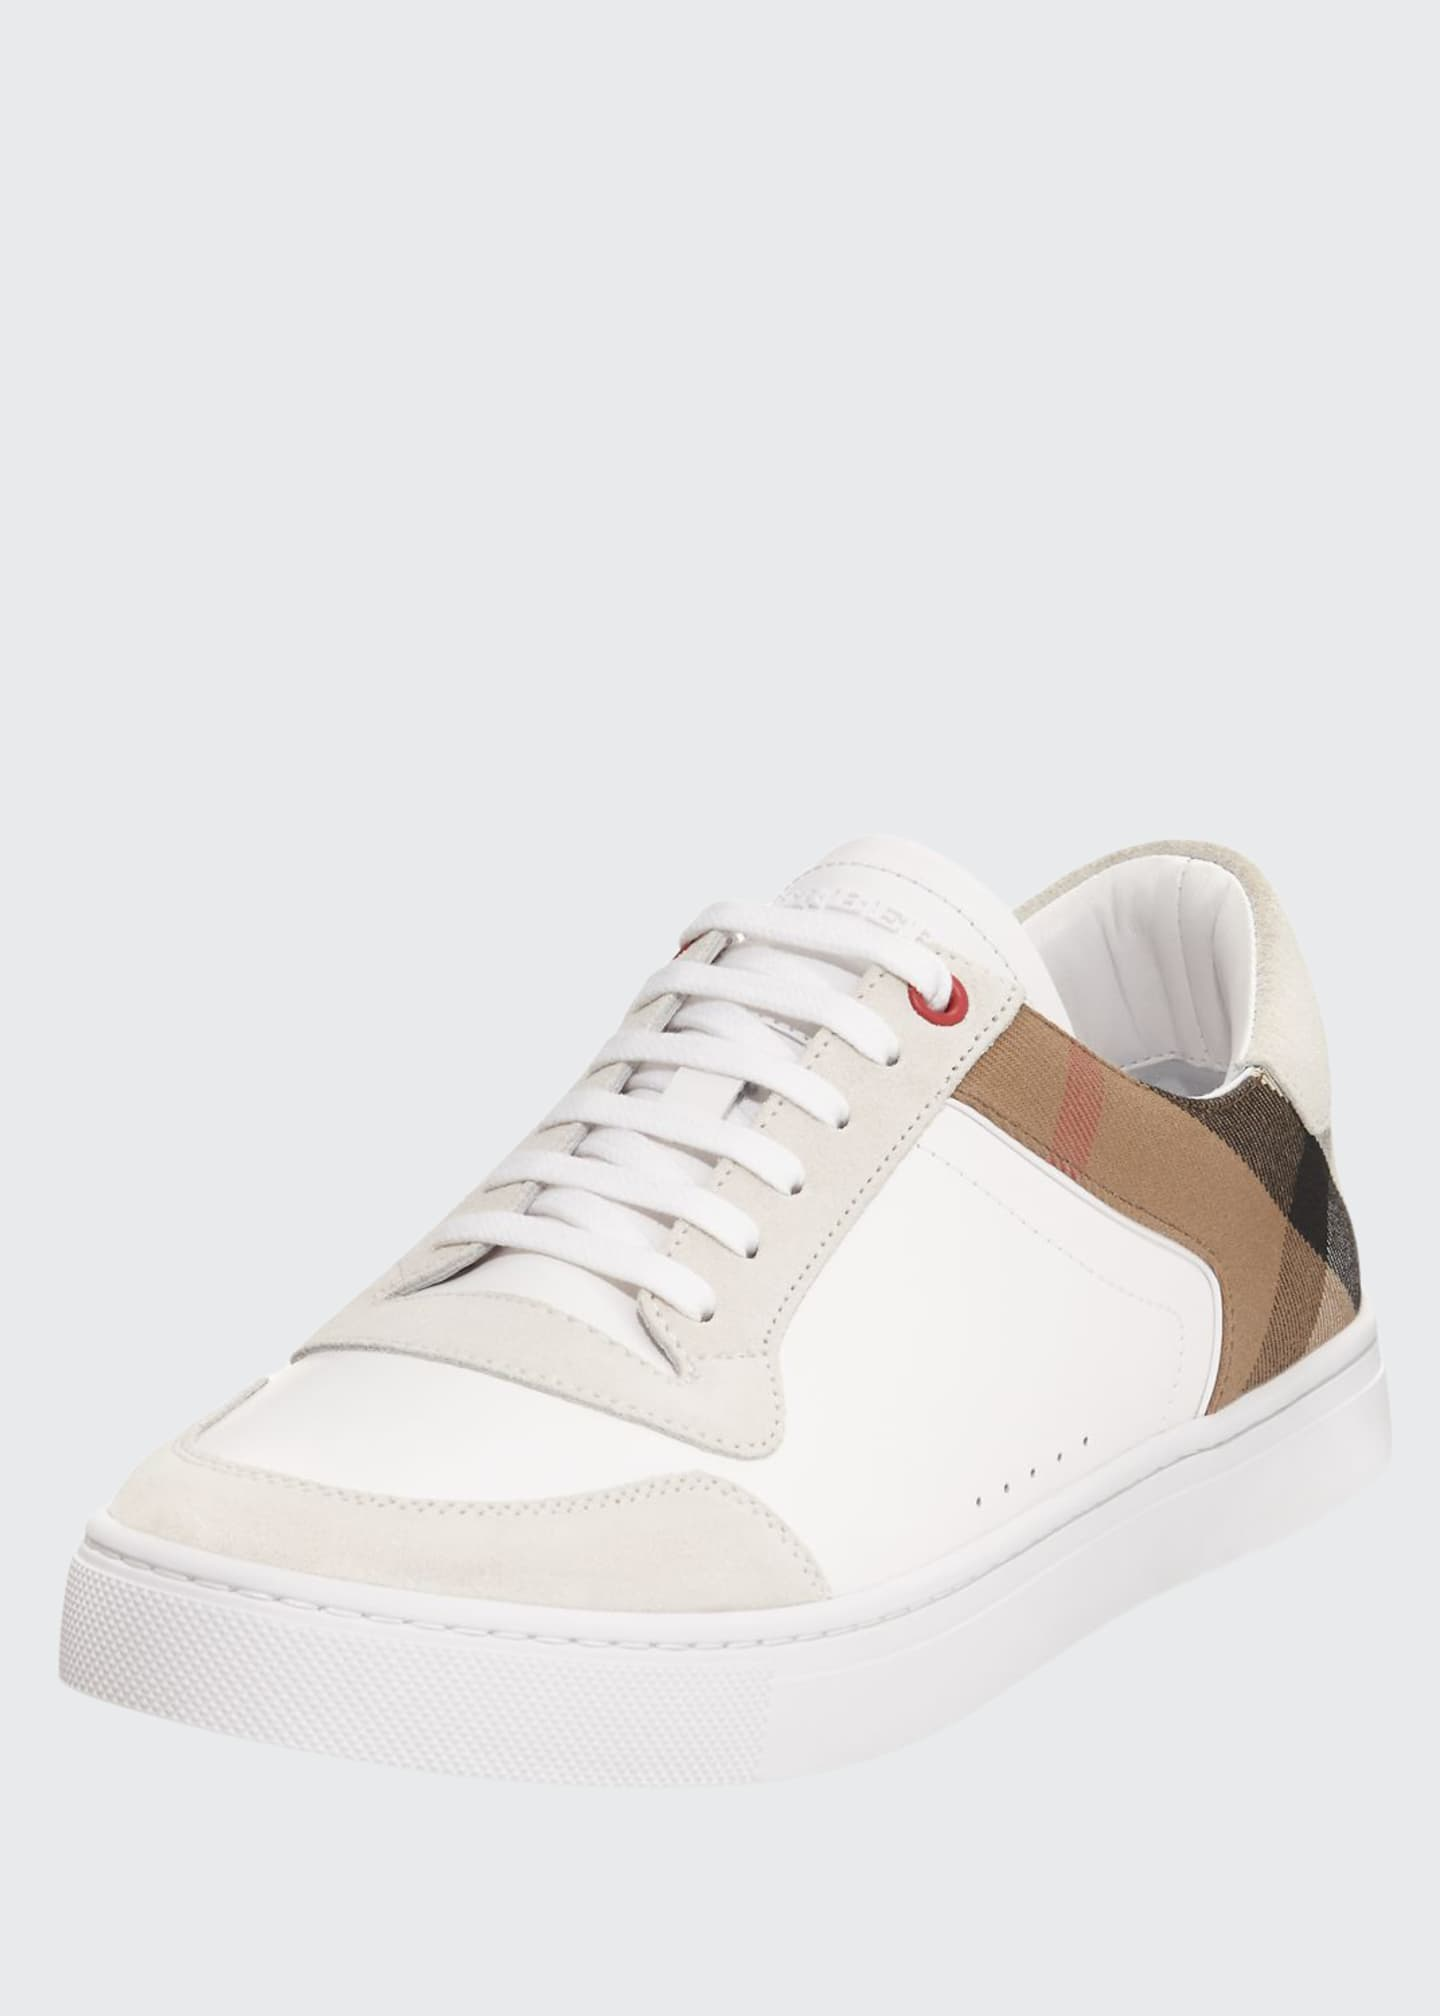 Image 1 of 3: Men's Reeth Leather & House Check Low-Top Sneakers, White